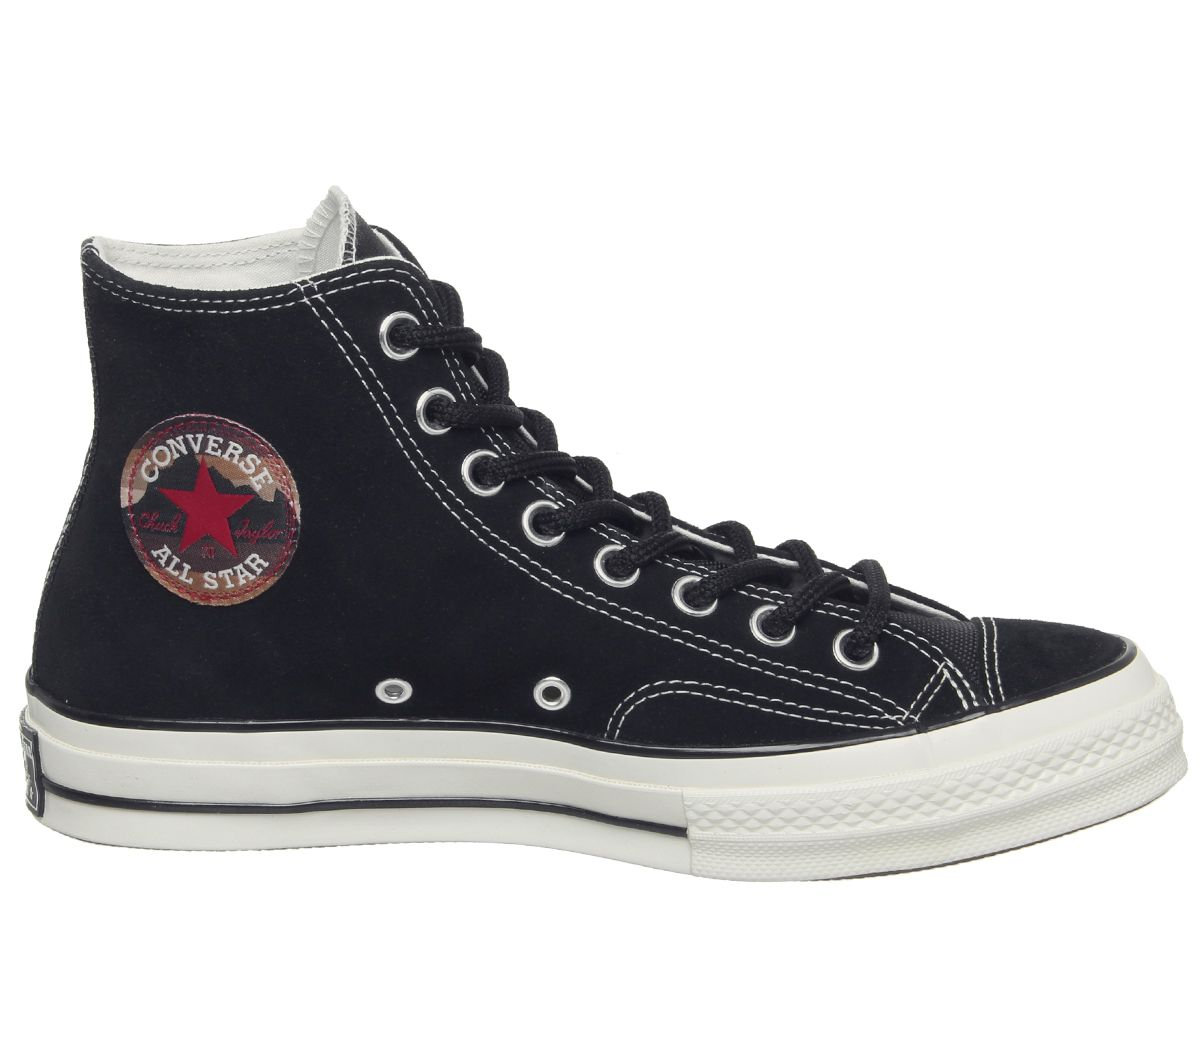 f9afdef3bf7 Mens Converse All Star Hi 70 S Trainers Black Egret Patch Trainers ...